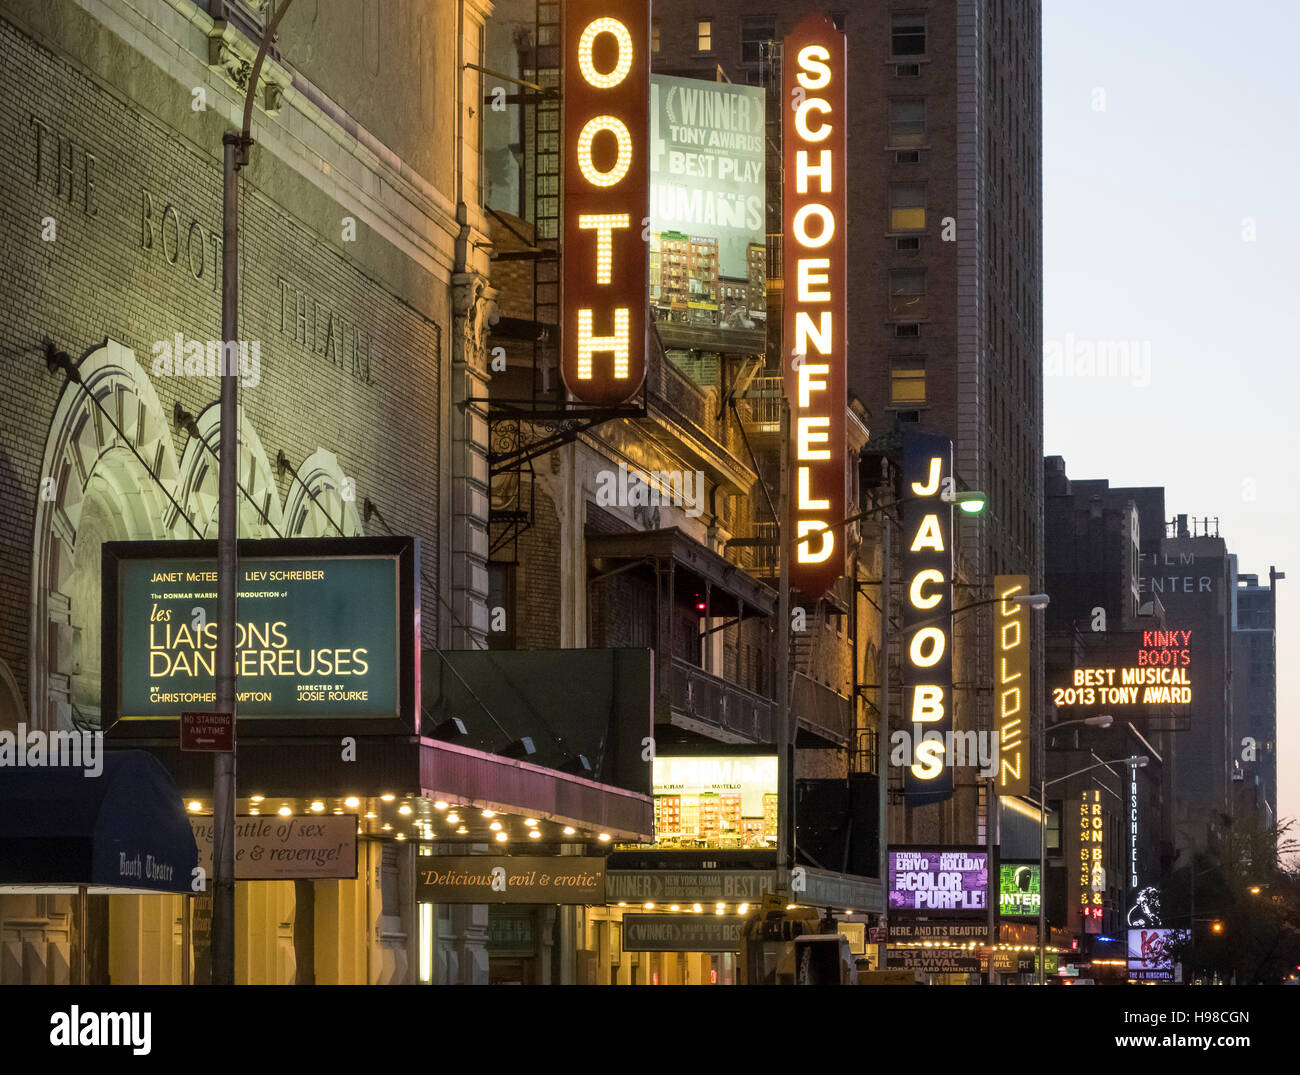 A line of Broadway theaters on West 45th Street in New York City - Stock Image